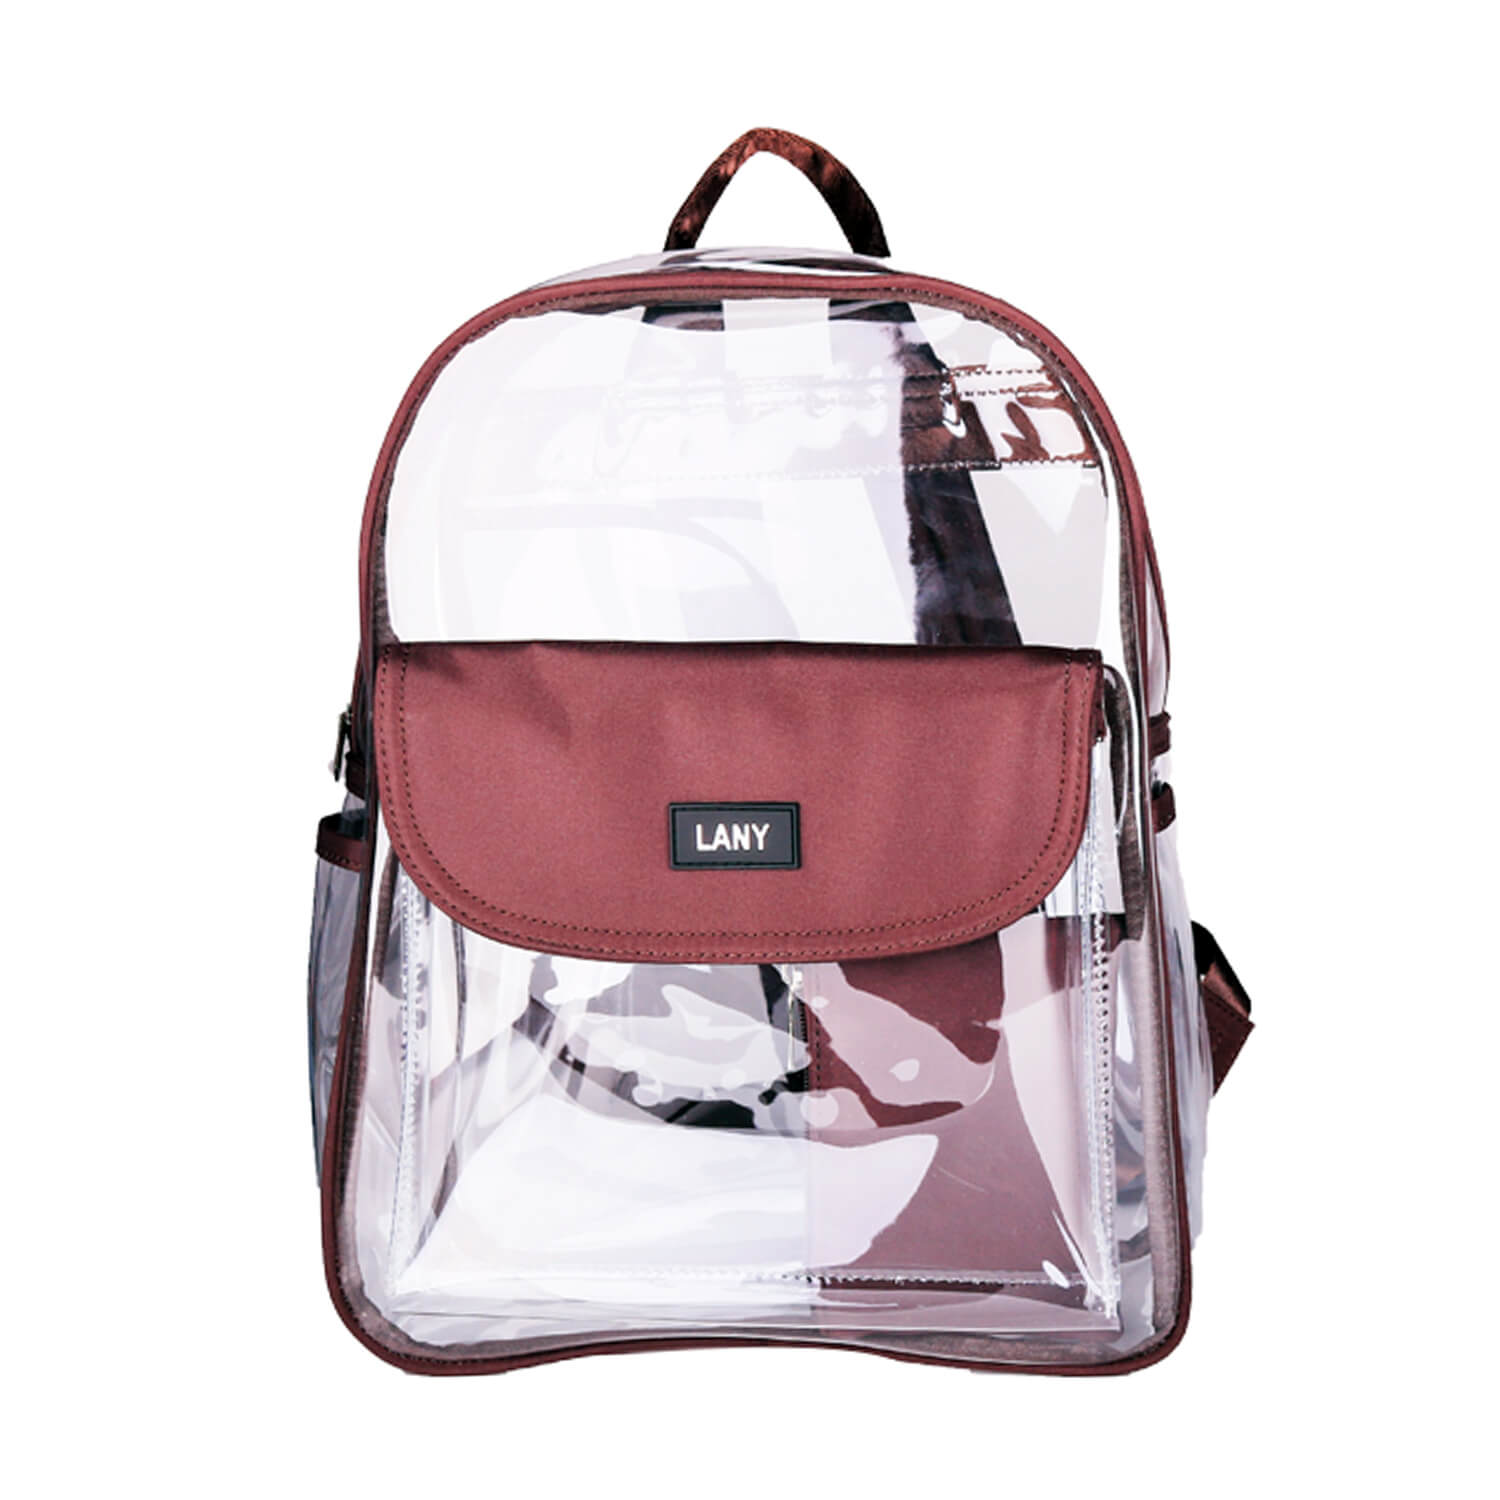 Large Clear Backpack